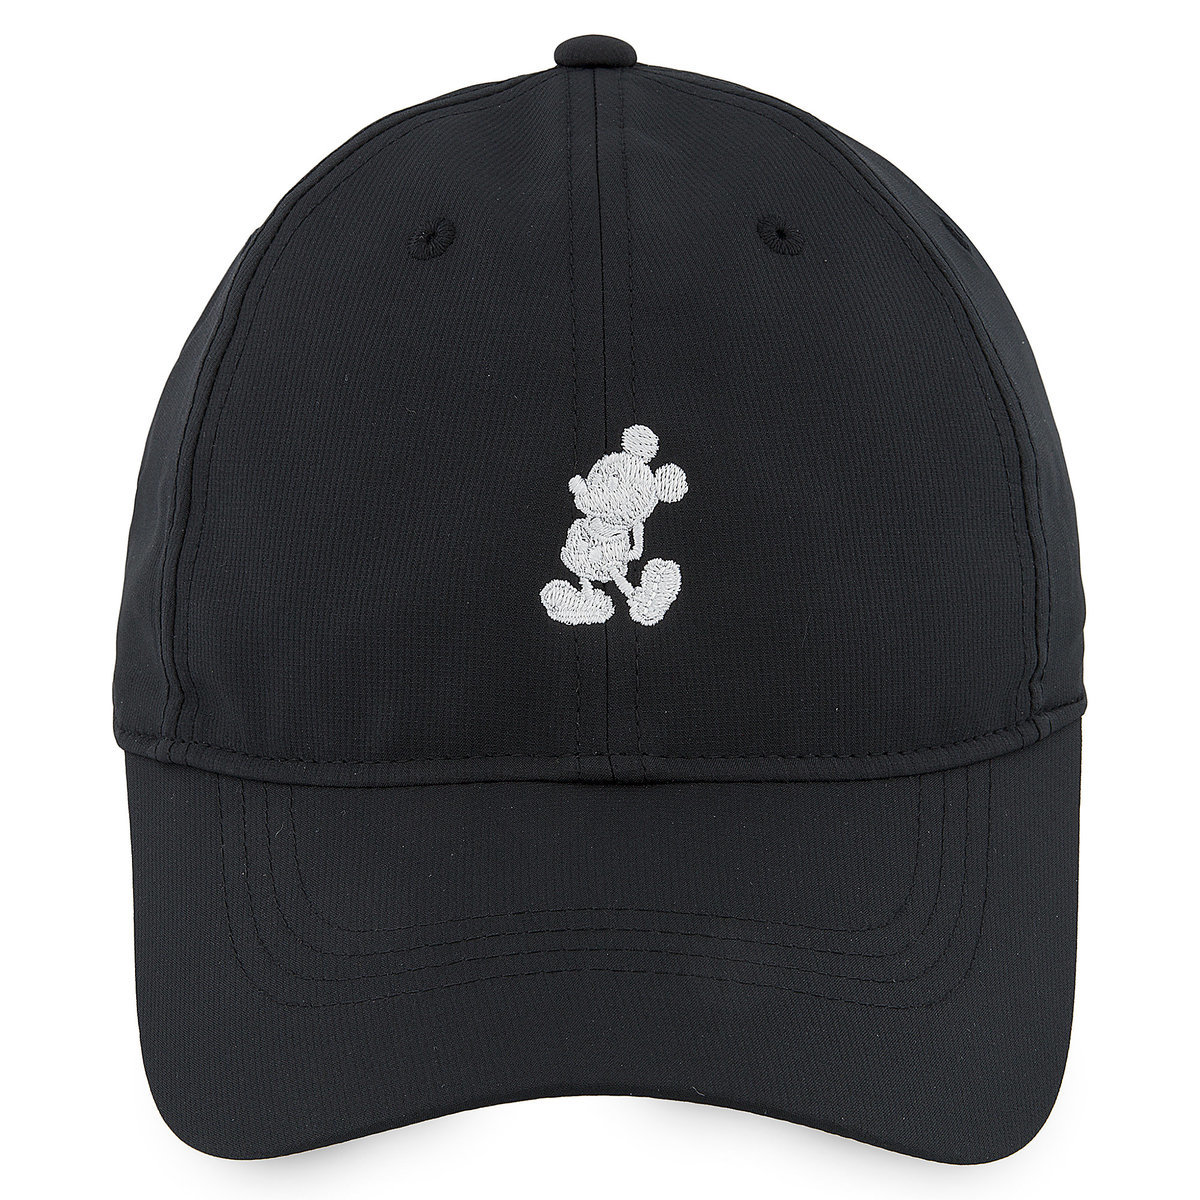 Mickey Mouse Silhouette Baseball Hat by Nike - Black | shopDisney